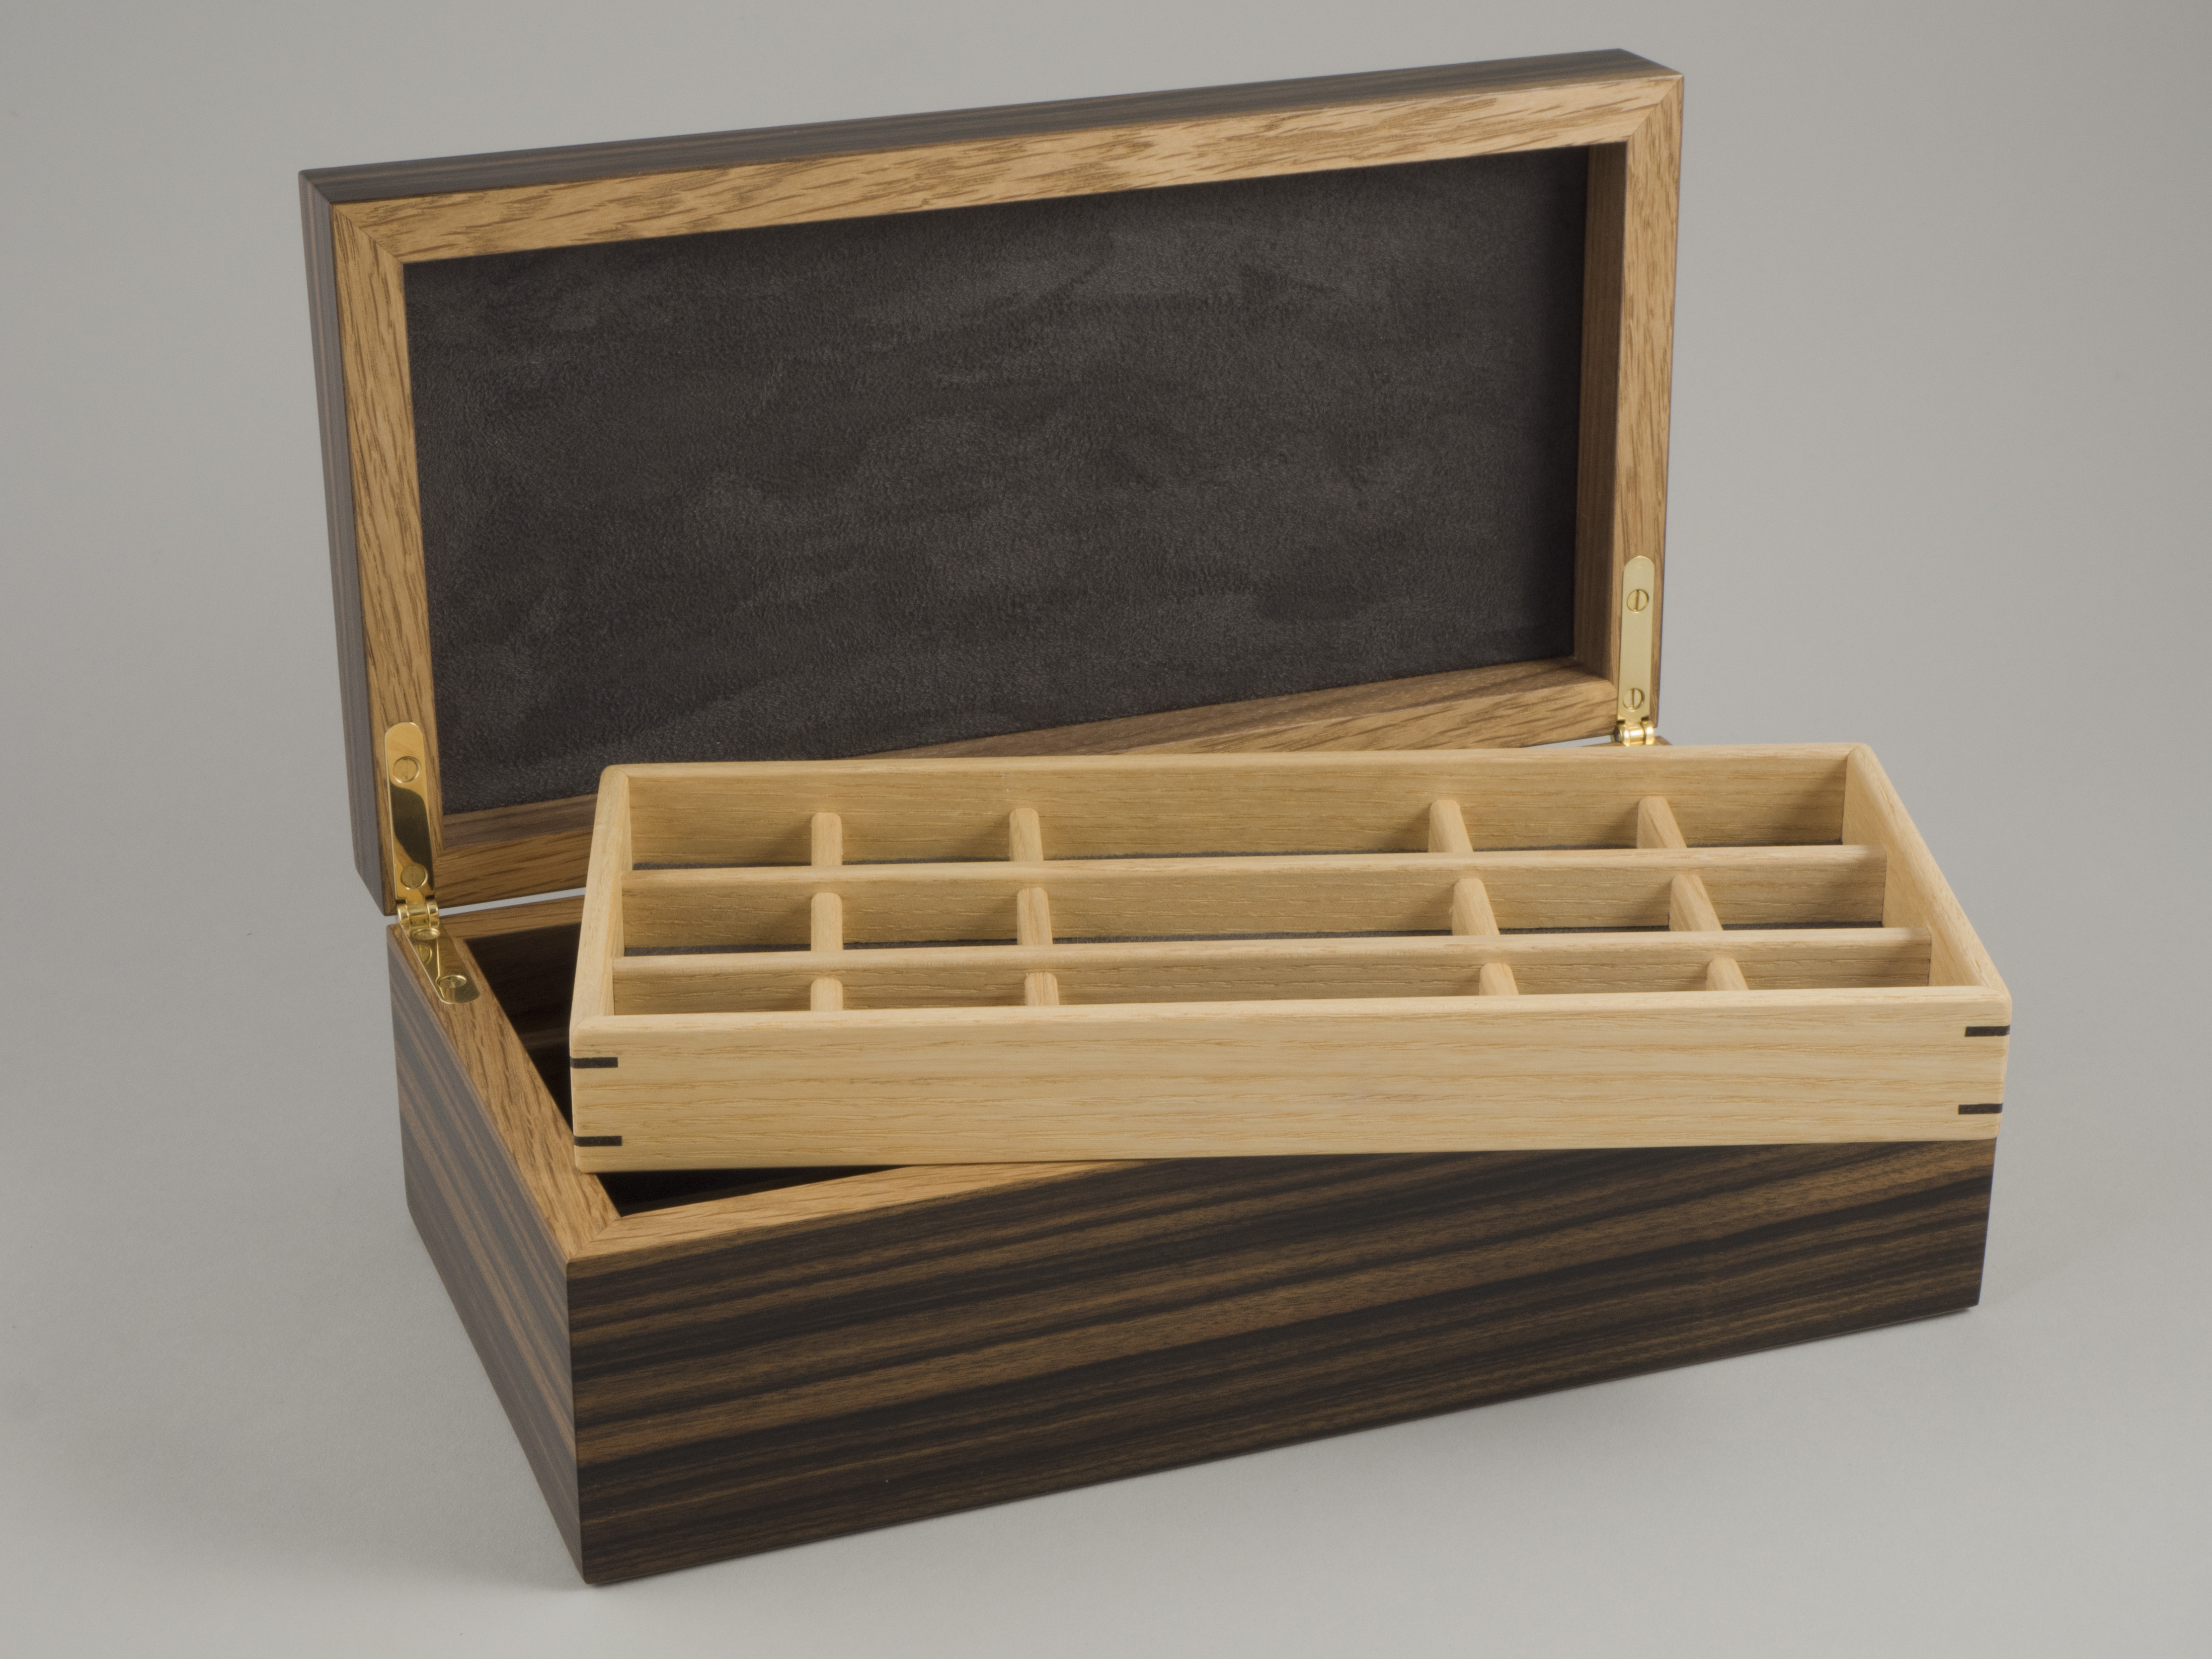 Lift out storage tray